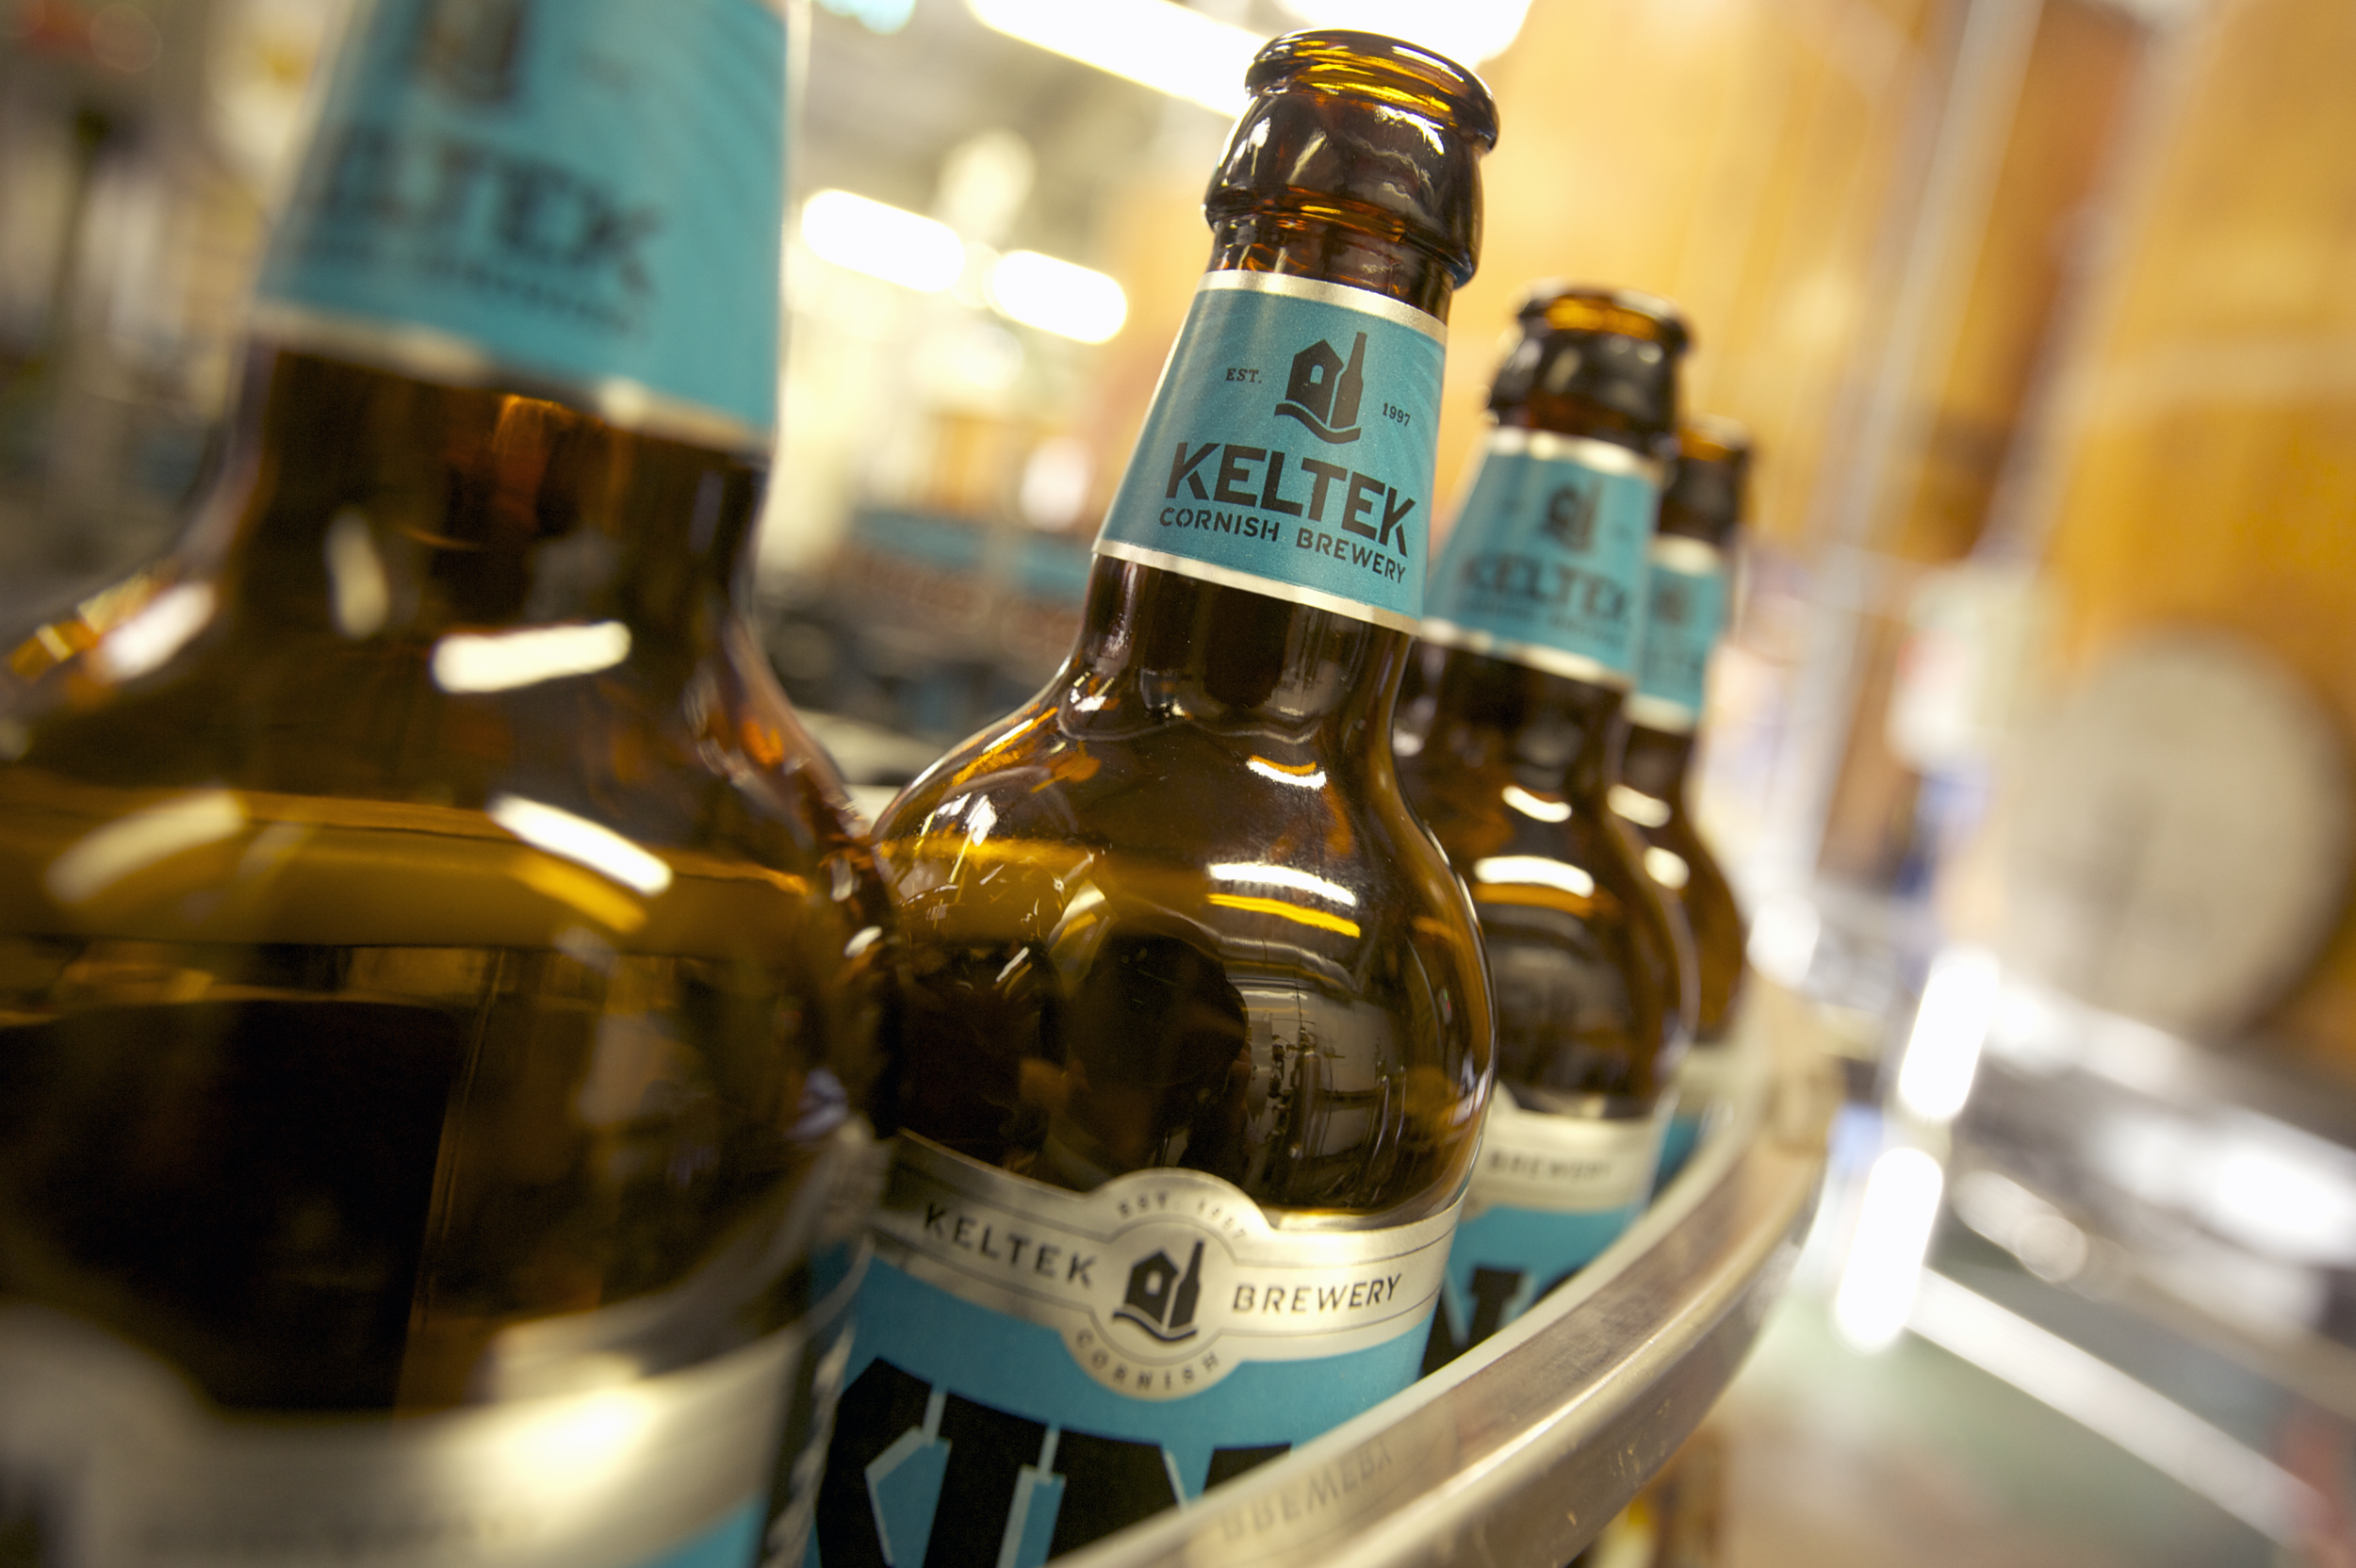 About - Founded in 1997, Keltek is one of Cornwall's longest-established breweries.